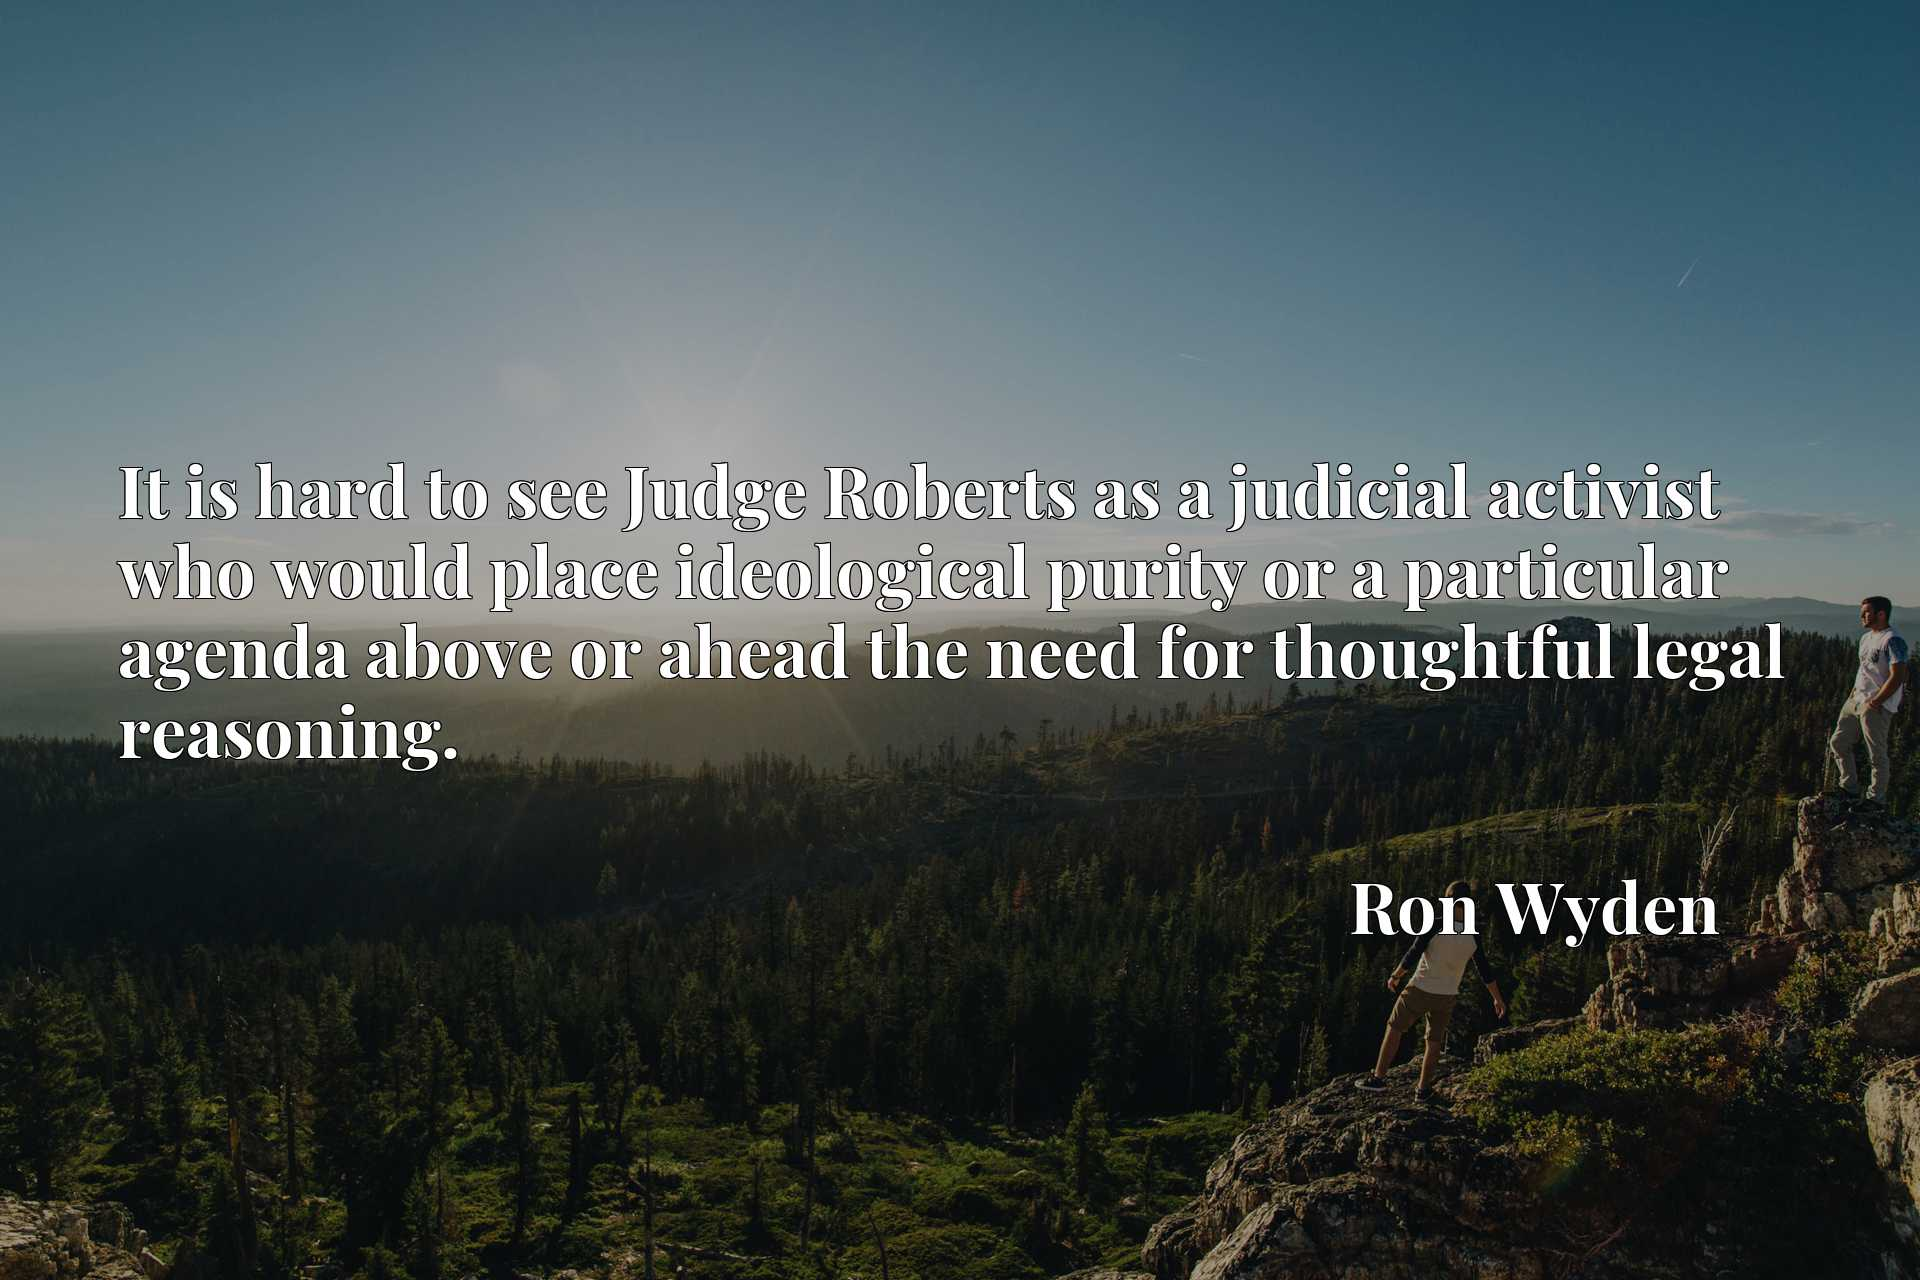 Quote Picture :It is hard to see Judge Roberts as a judicial activist who would place ideological purity or a particular agenda above or ahead the need for thoughtful legal reasoning.